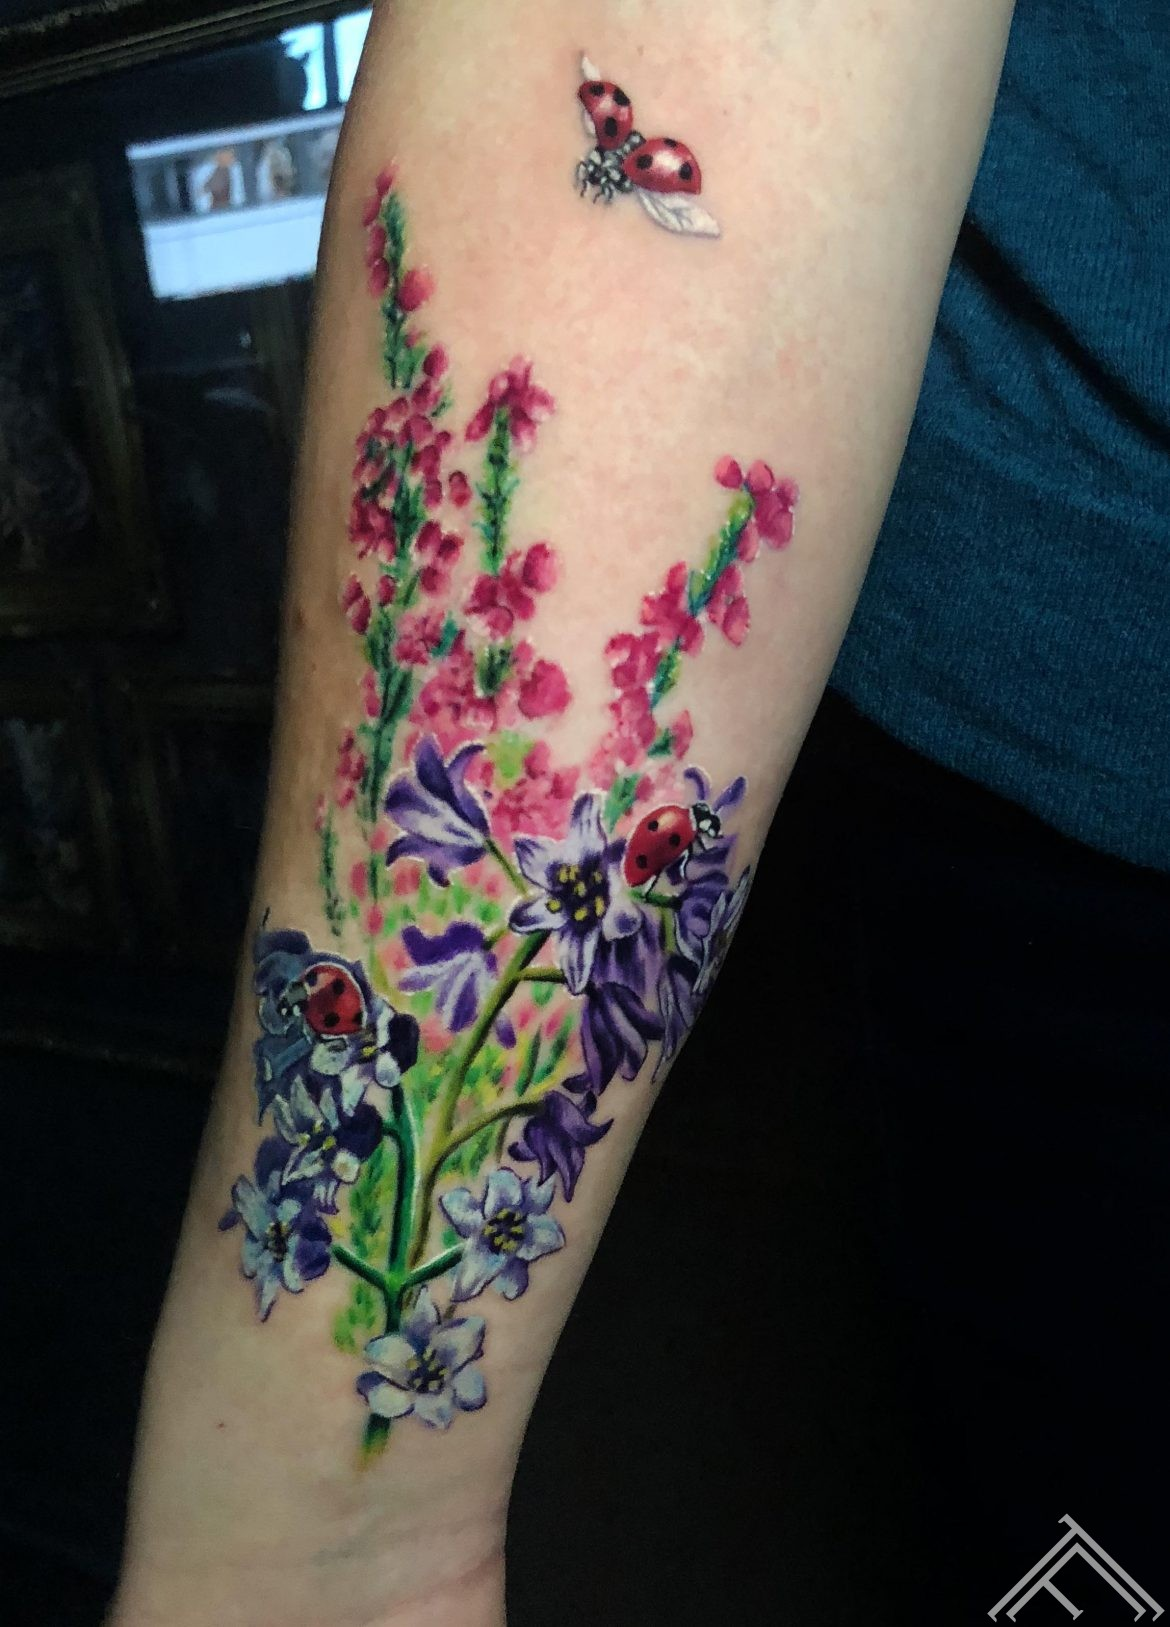 janisanderson-tattoo-flowers-tattoofrequency-riga-art-fb